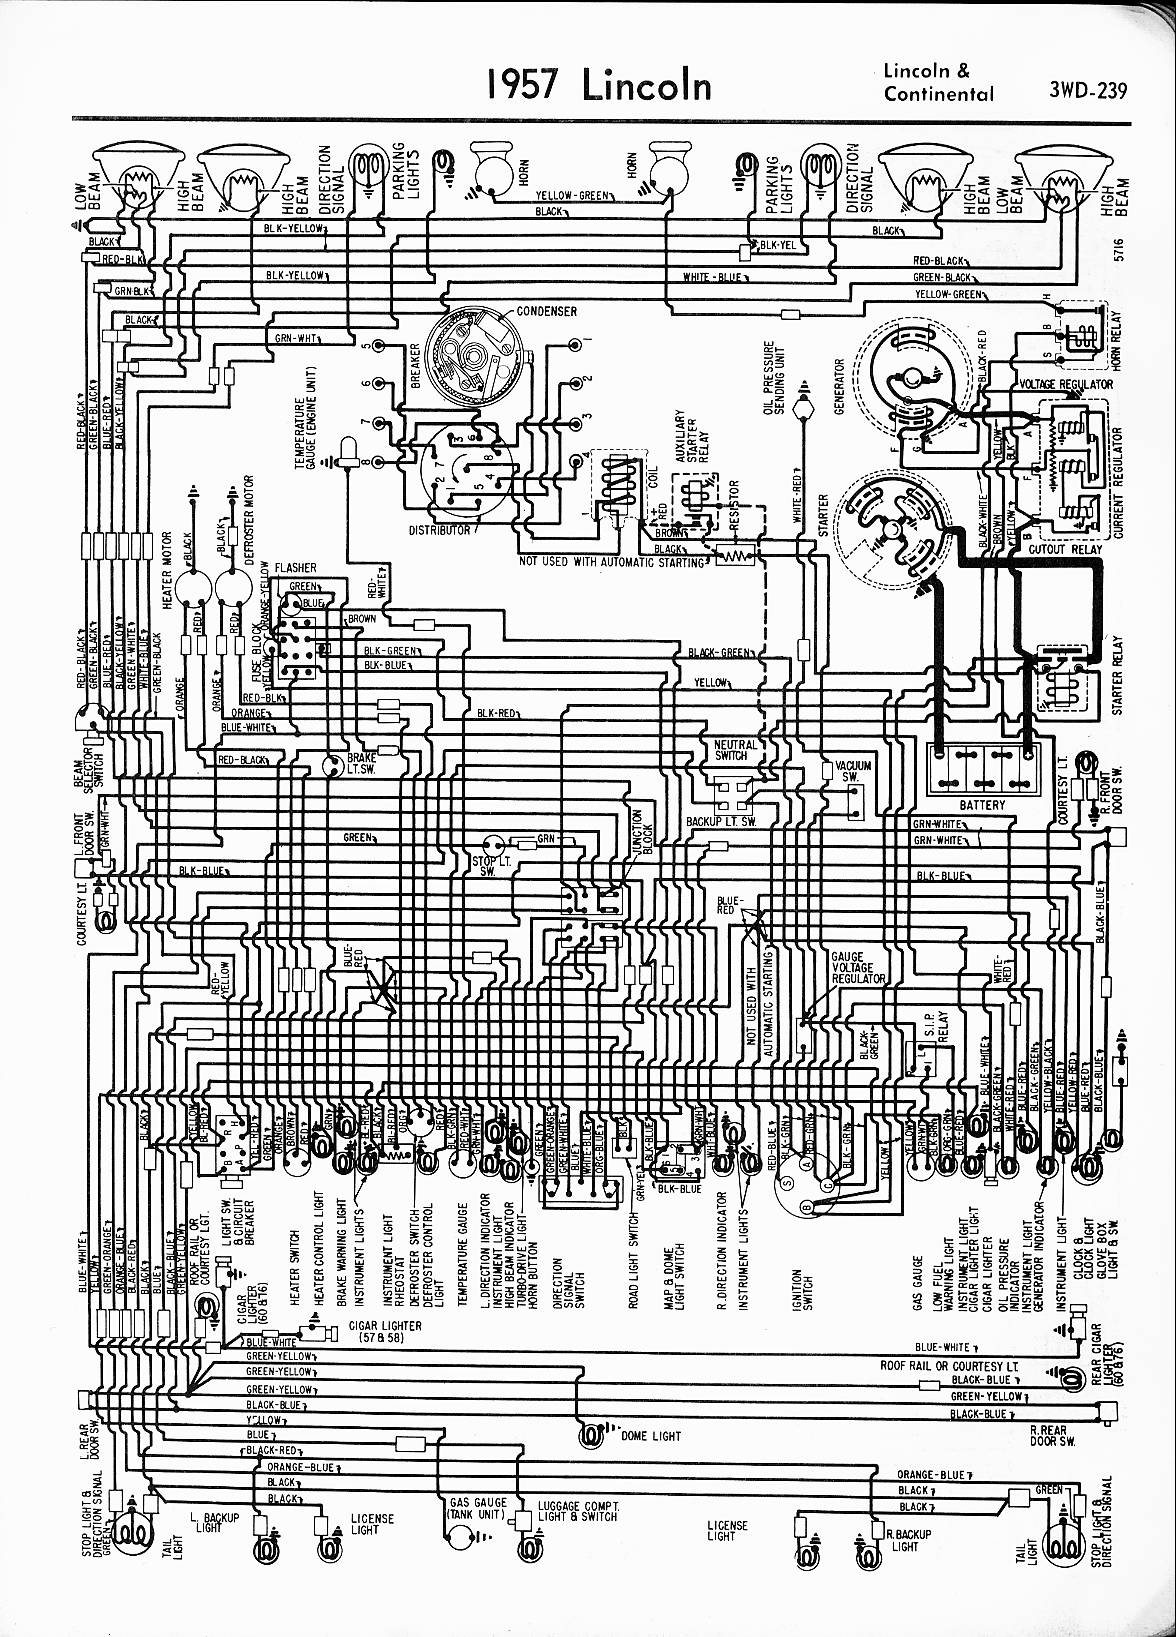 MWireLin_Lin57_z3wd 239z_001 lincoln wiring diagrams 1957 1965  at mifinder.co